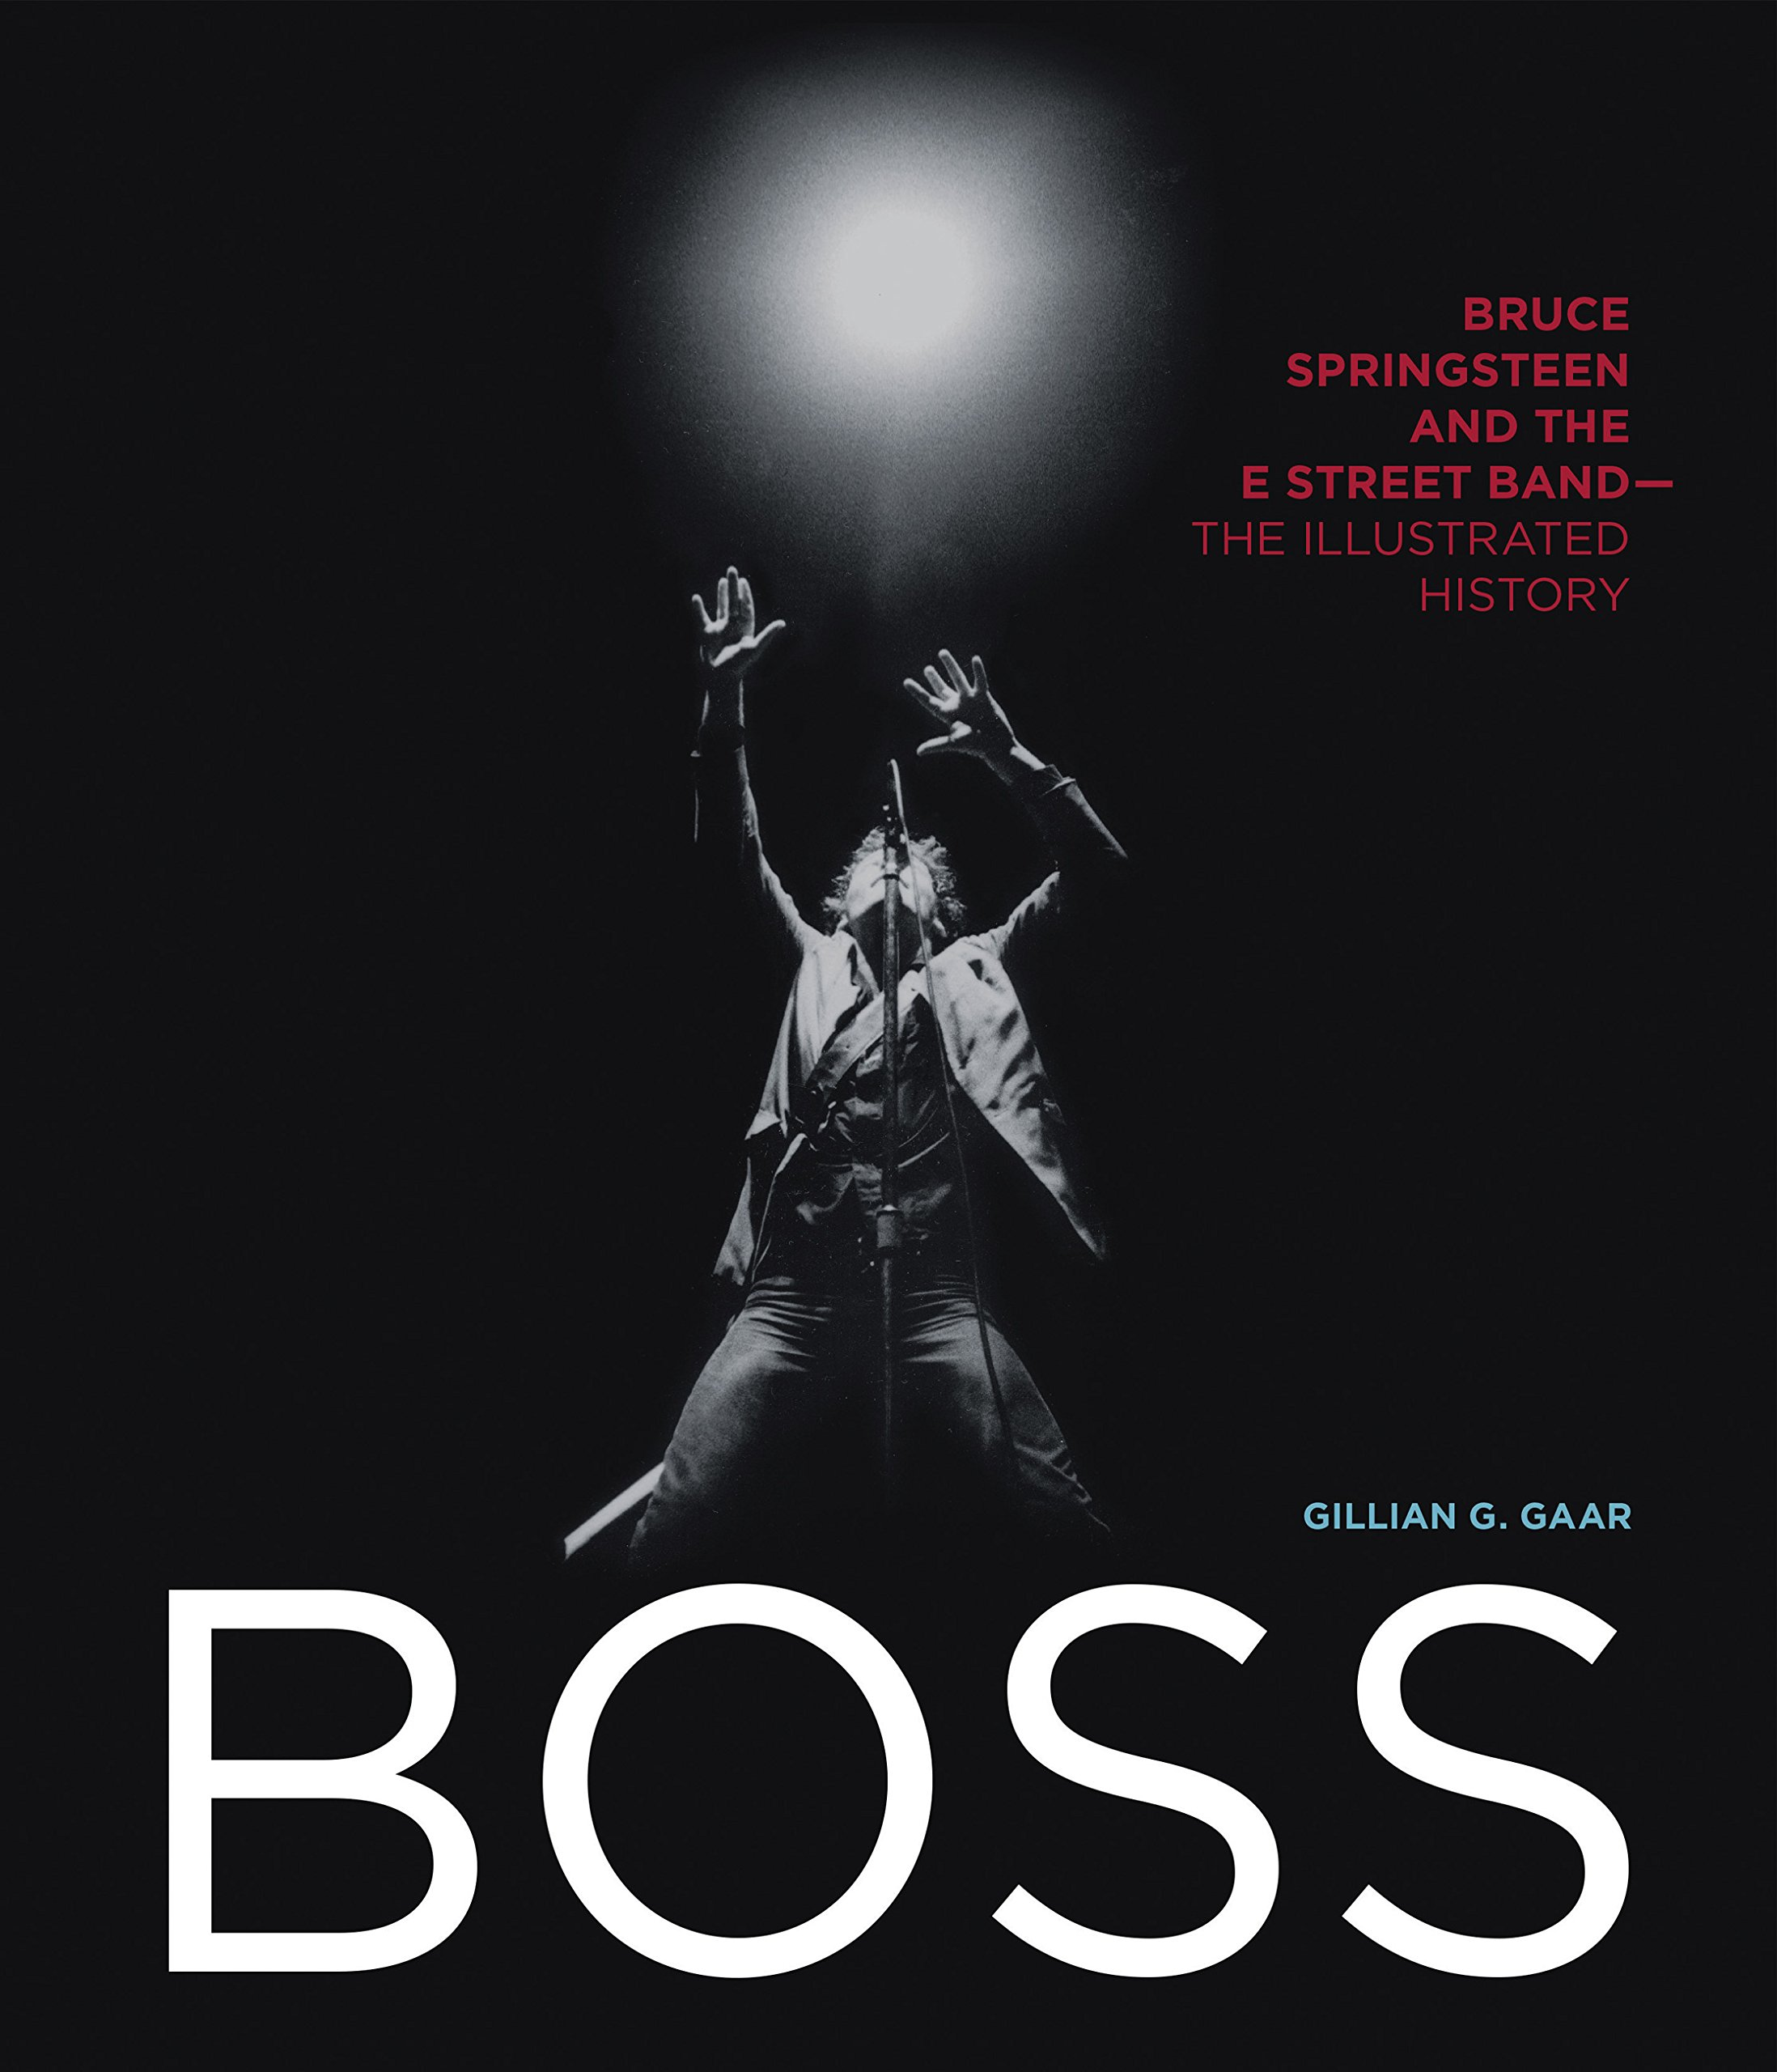 Boss Bruce Springsteen And The E Street Band The Illustrated